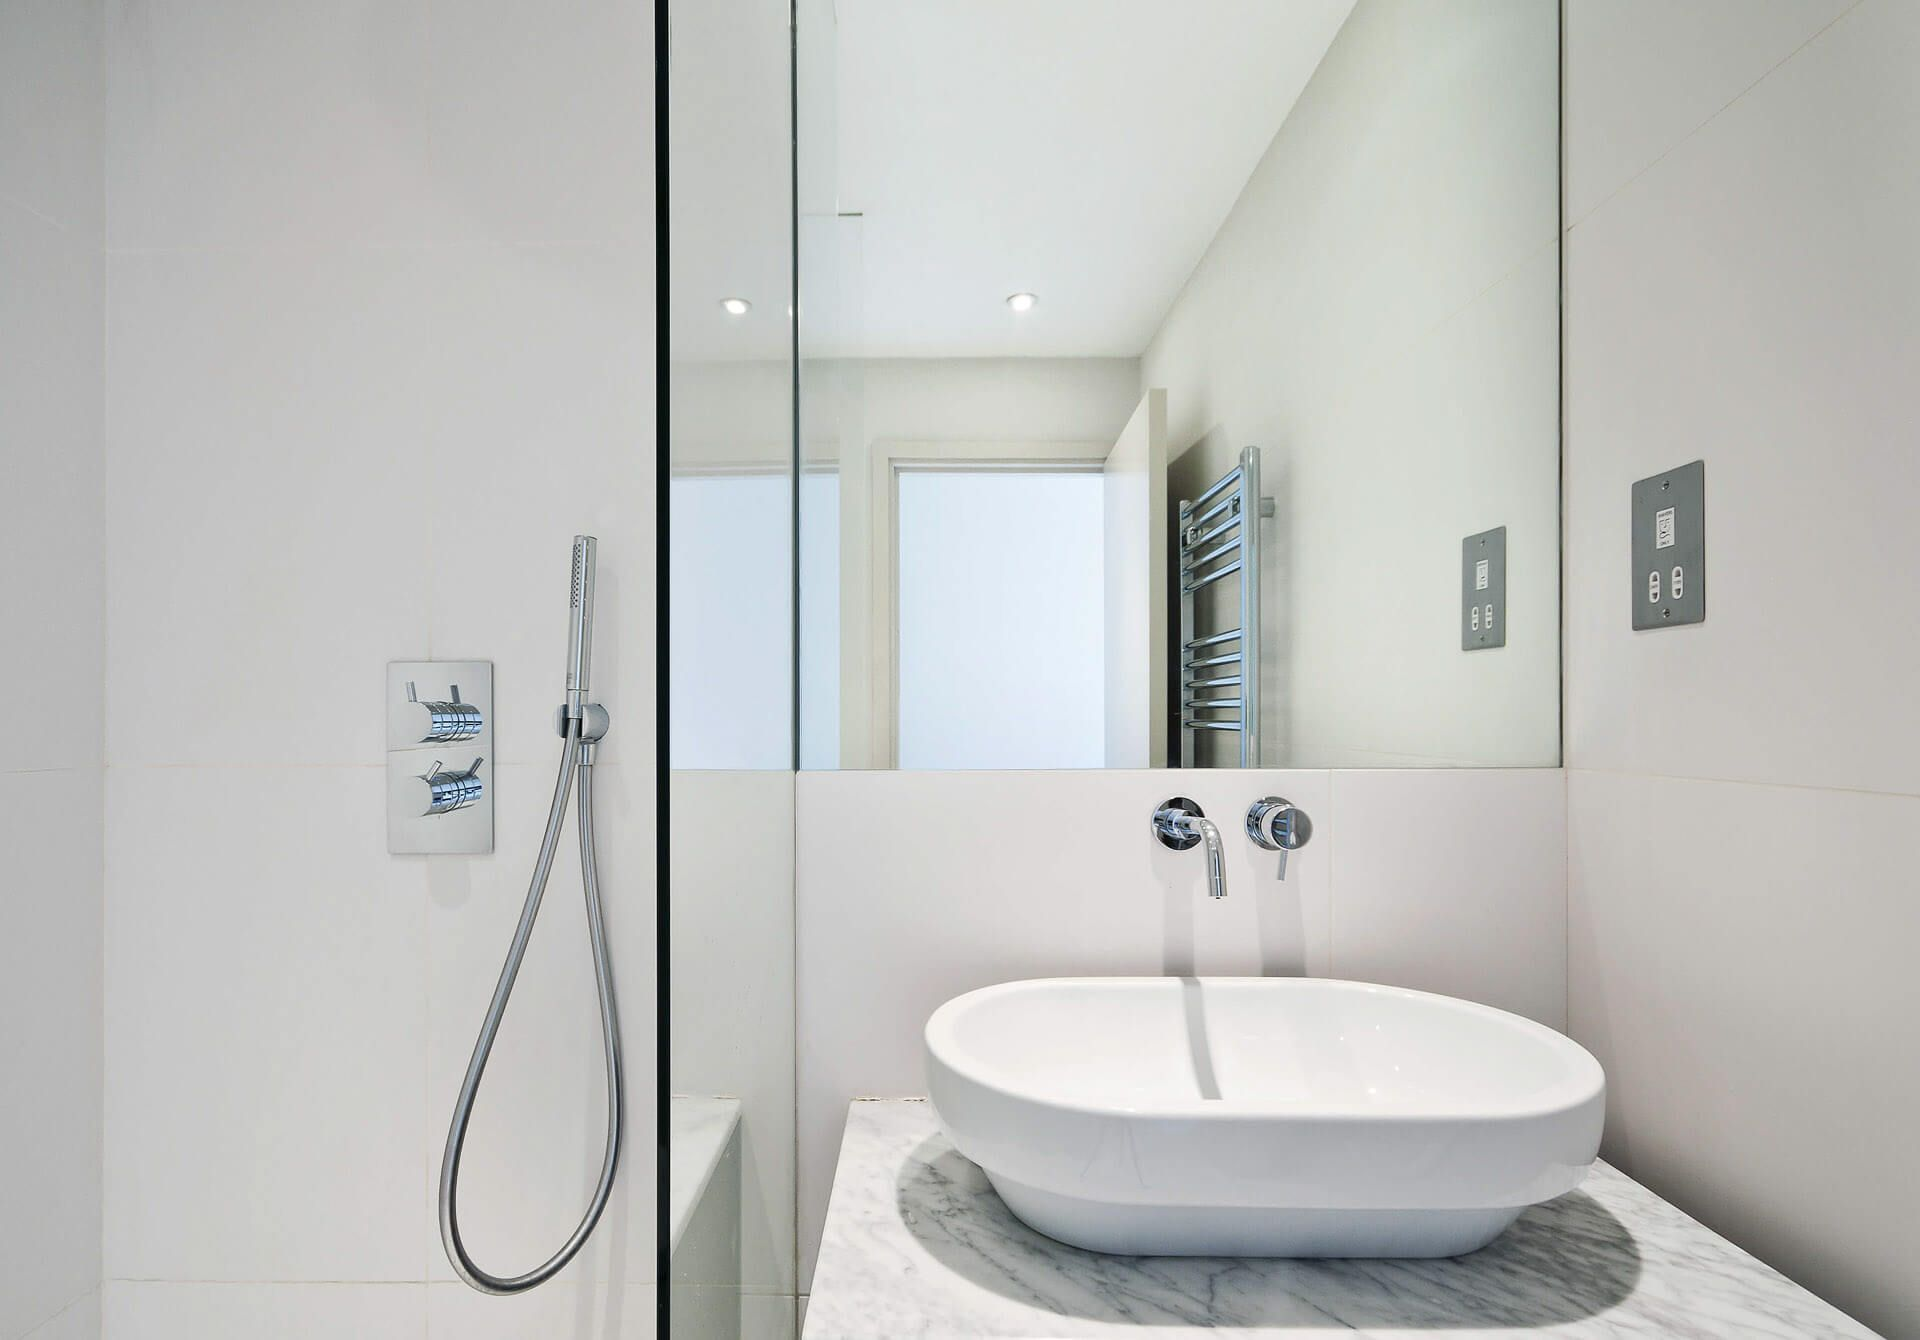 White bowl wash hand basin on counter top with wall mounted taps, flush mirror and glazed shower screen.